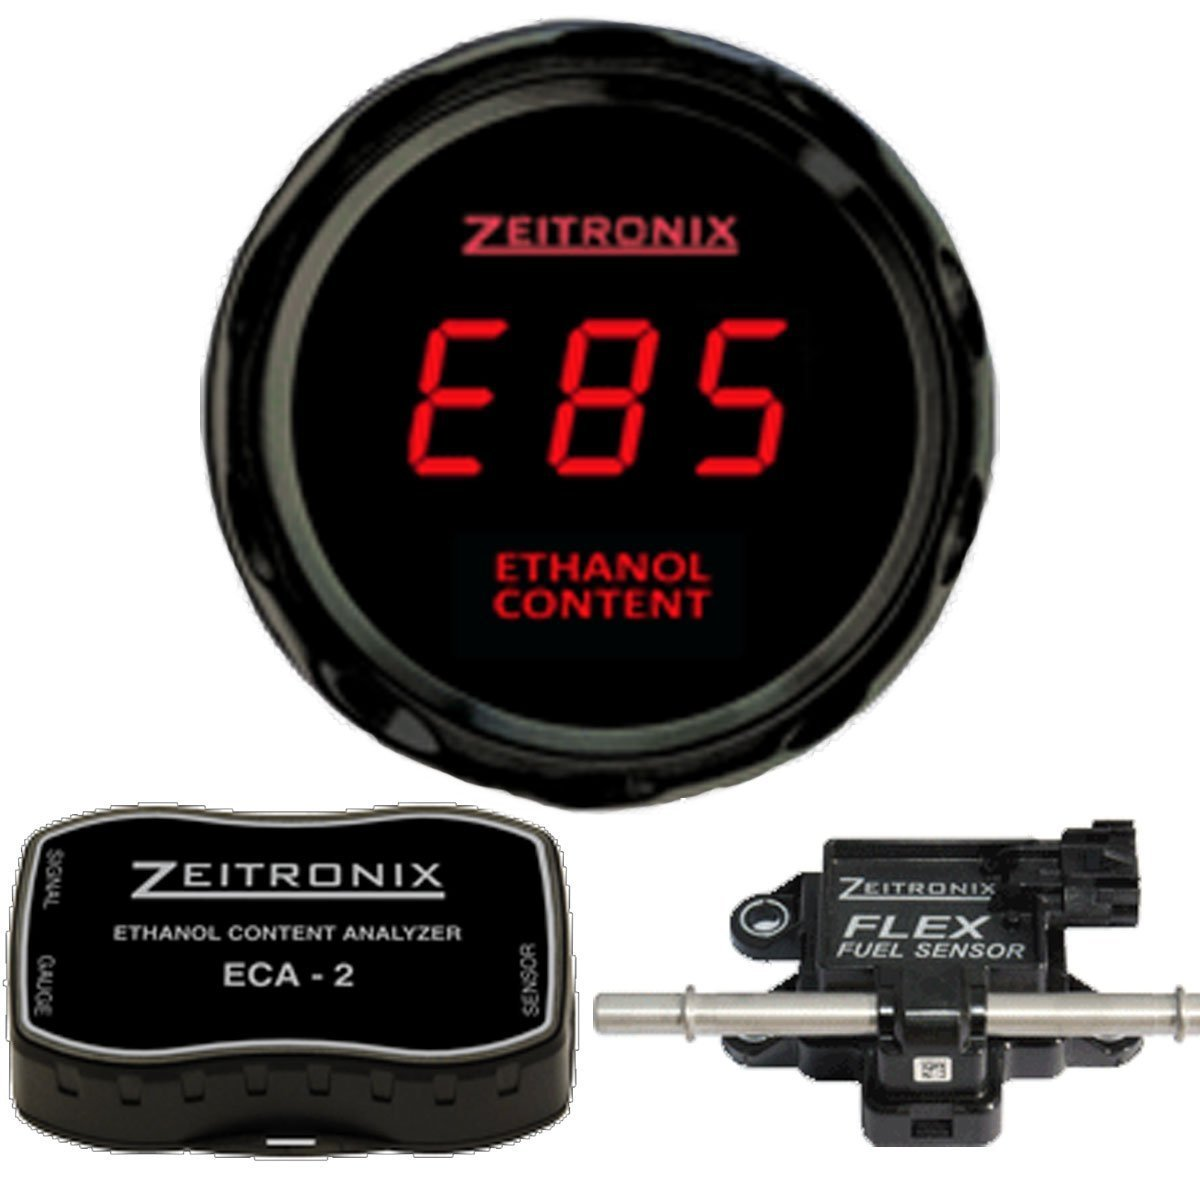 Zeitronix ECA-2 Ethanol E% Content Analyzer Kit with Red Display Gauge